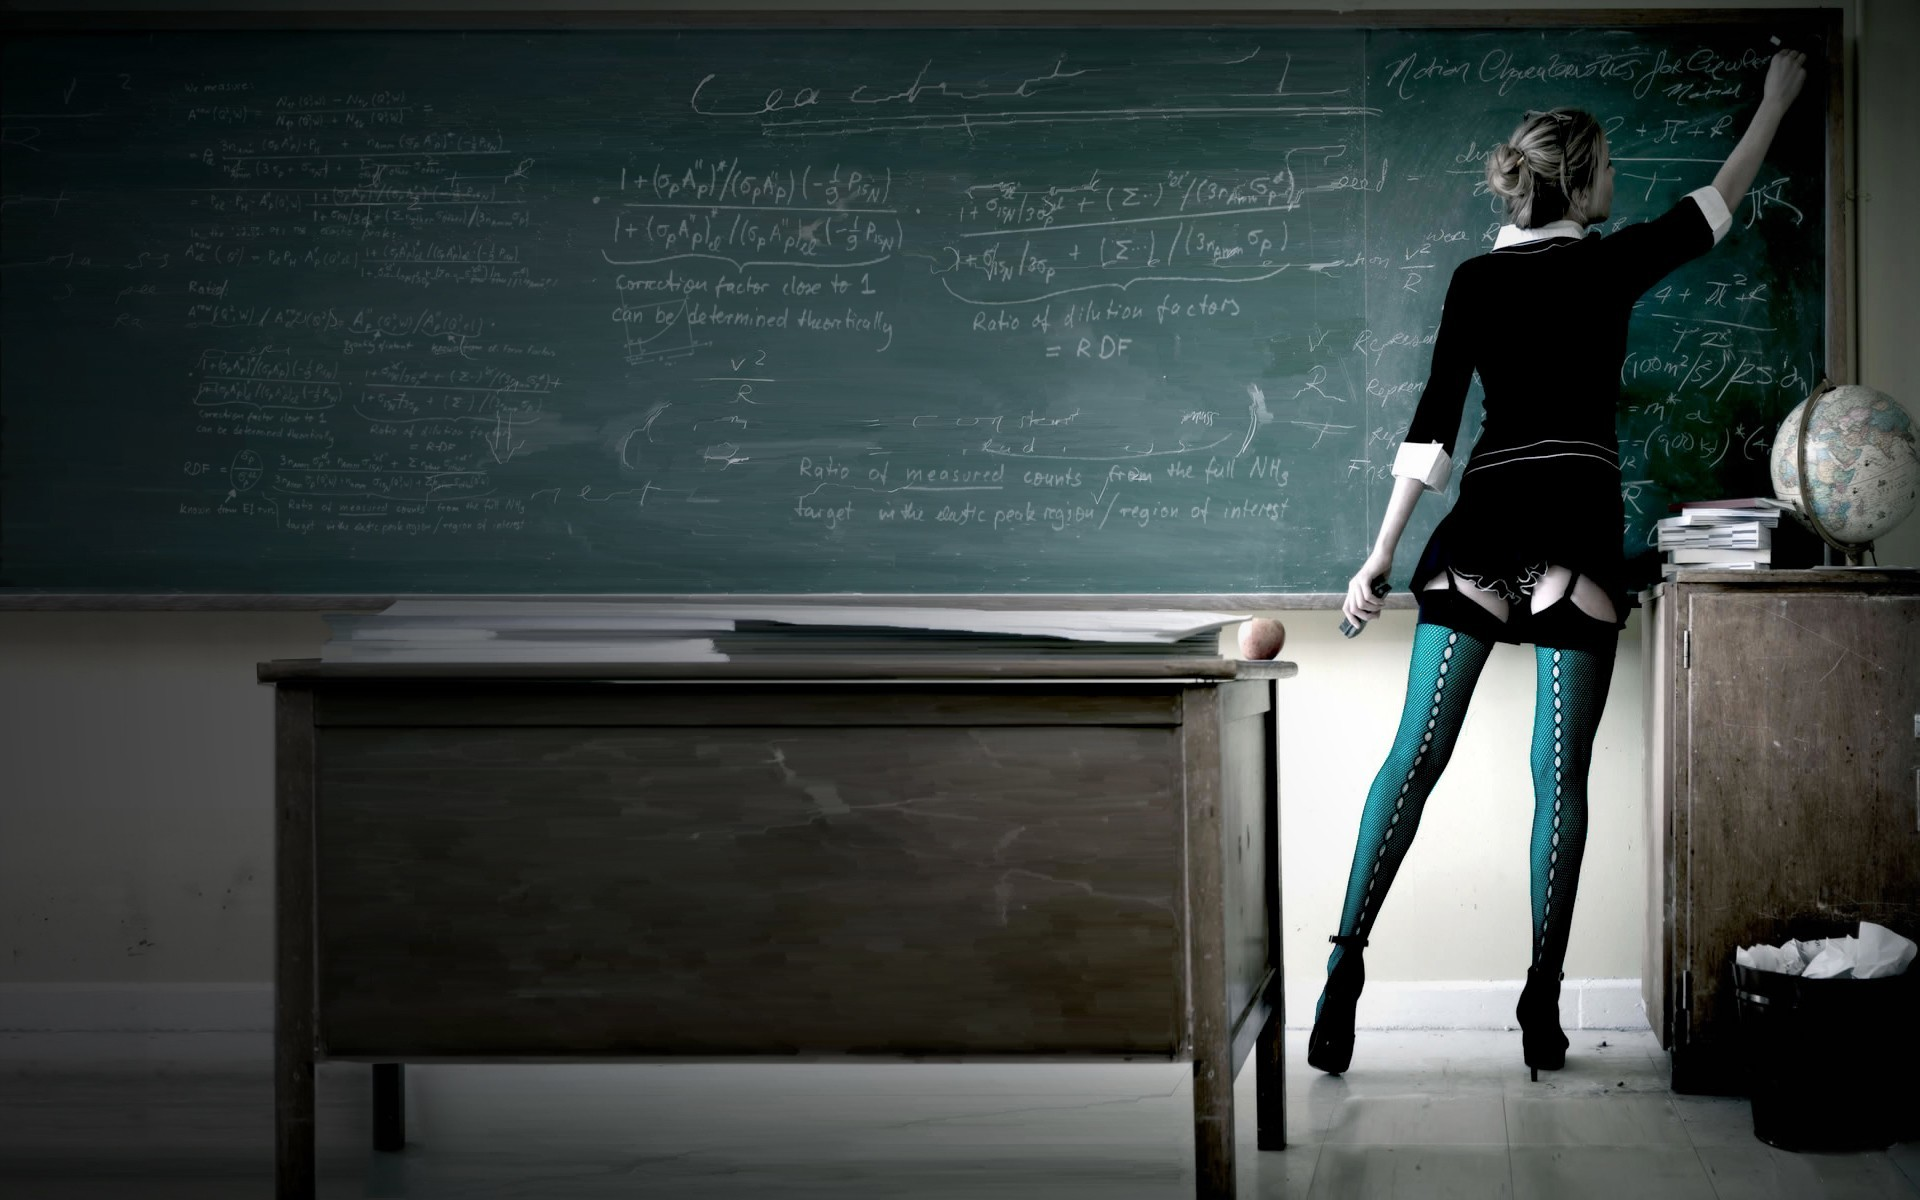 woman stockings teachers HD Wallpaper